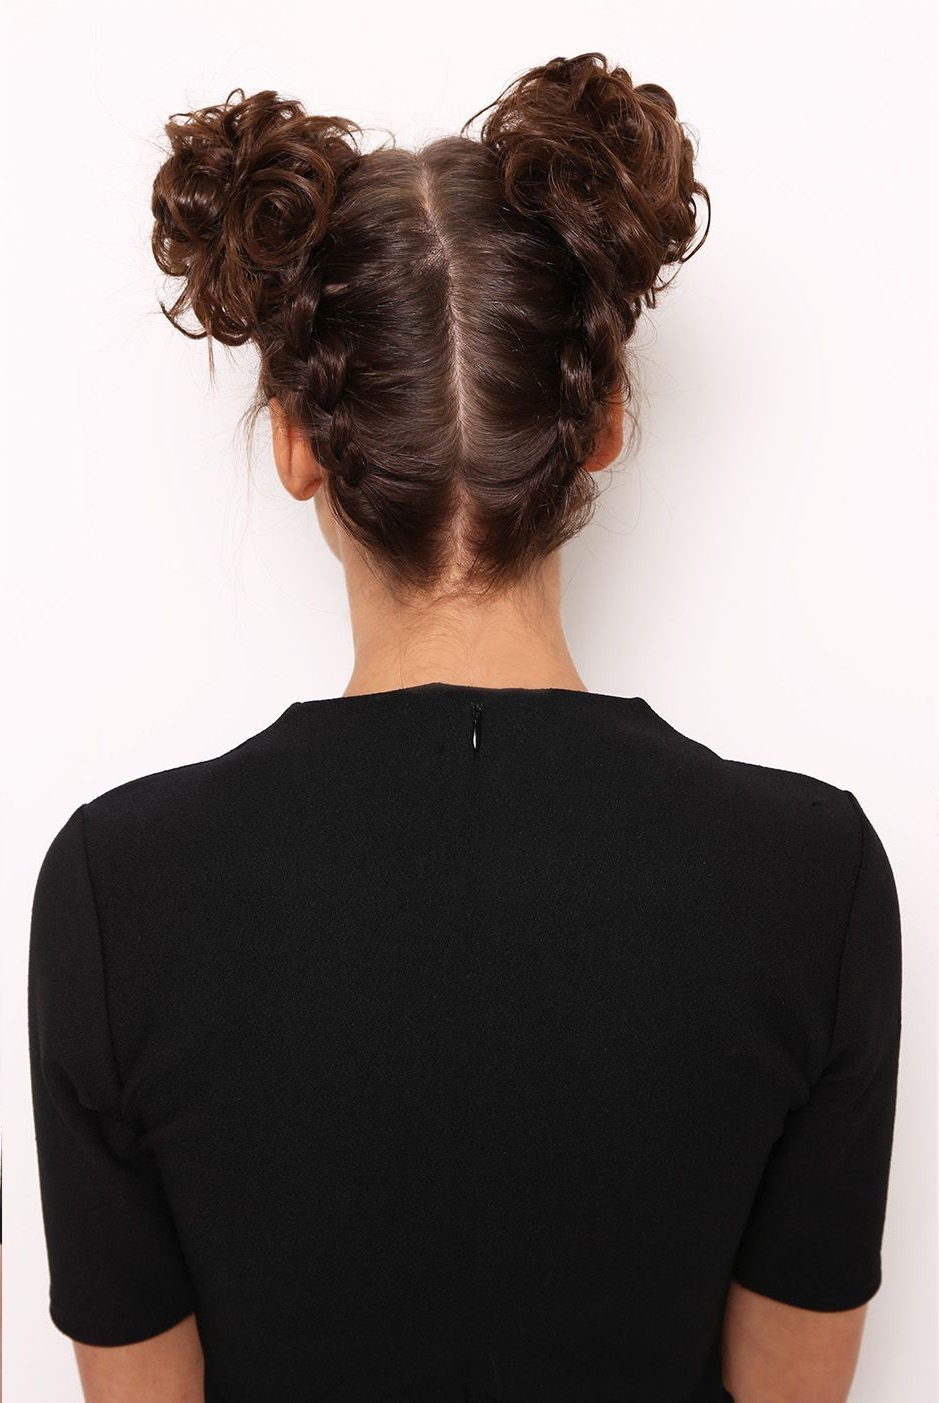 2020 Mini Buns Hairstyles With Regard To Space Buns – Lullabellz (View 1 of 20)